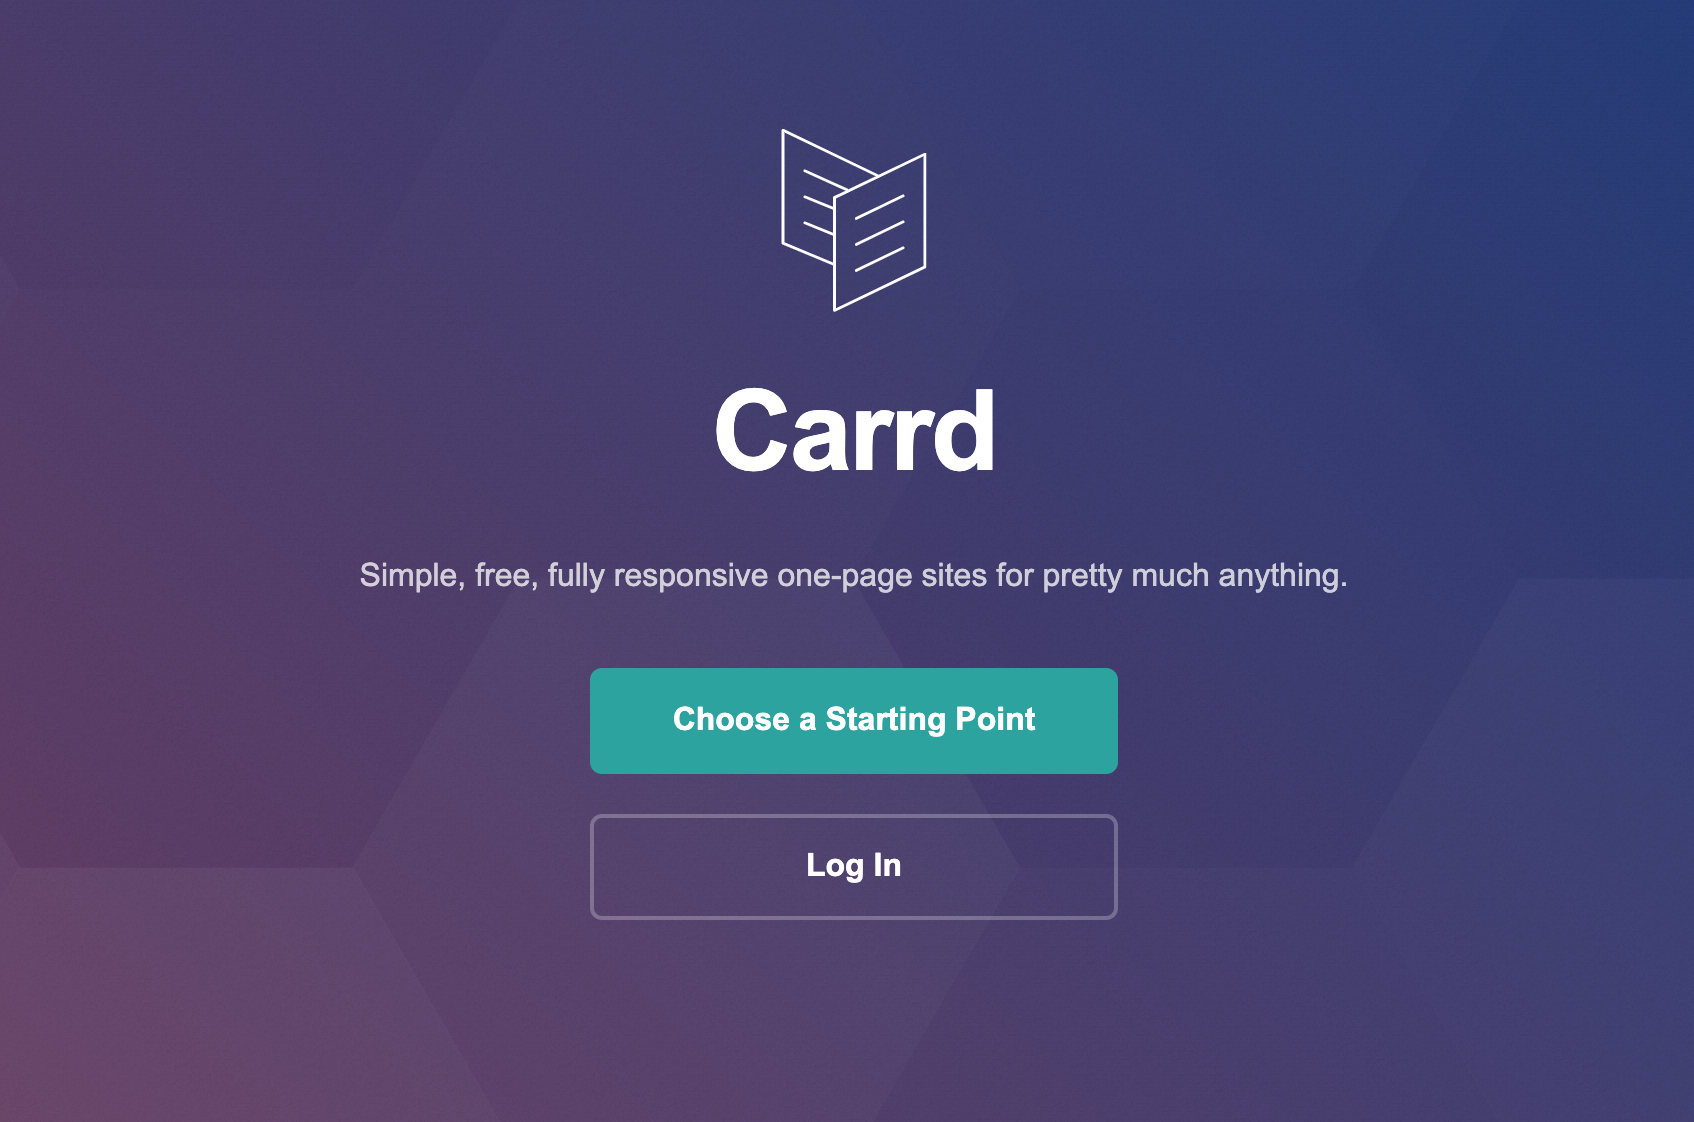 Carrd Choose a Starting Point